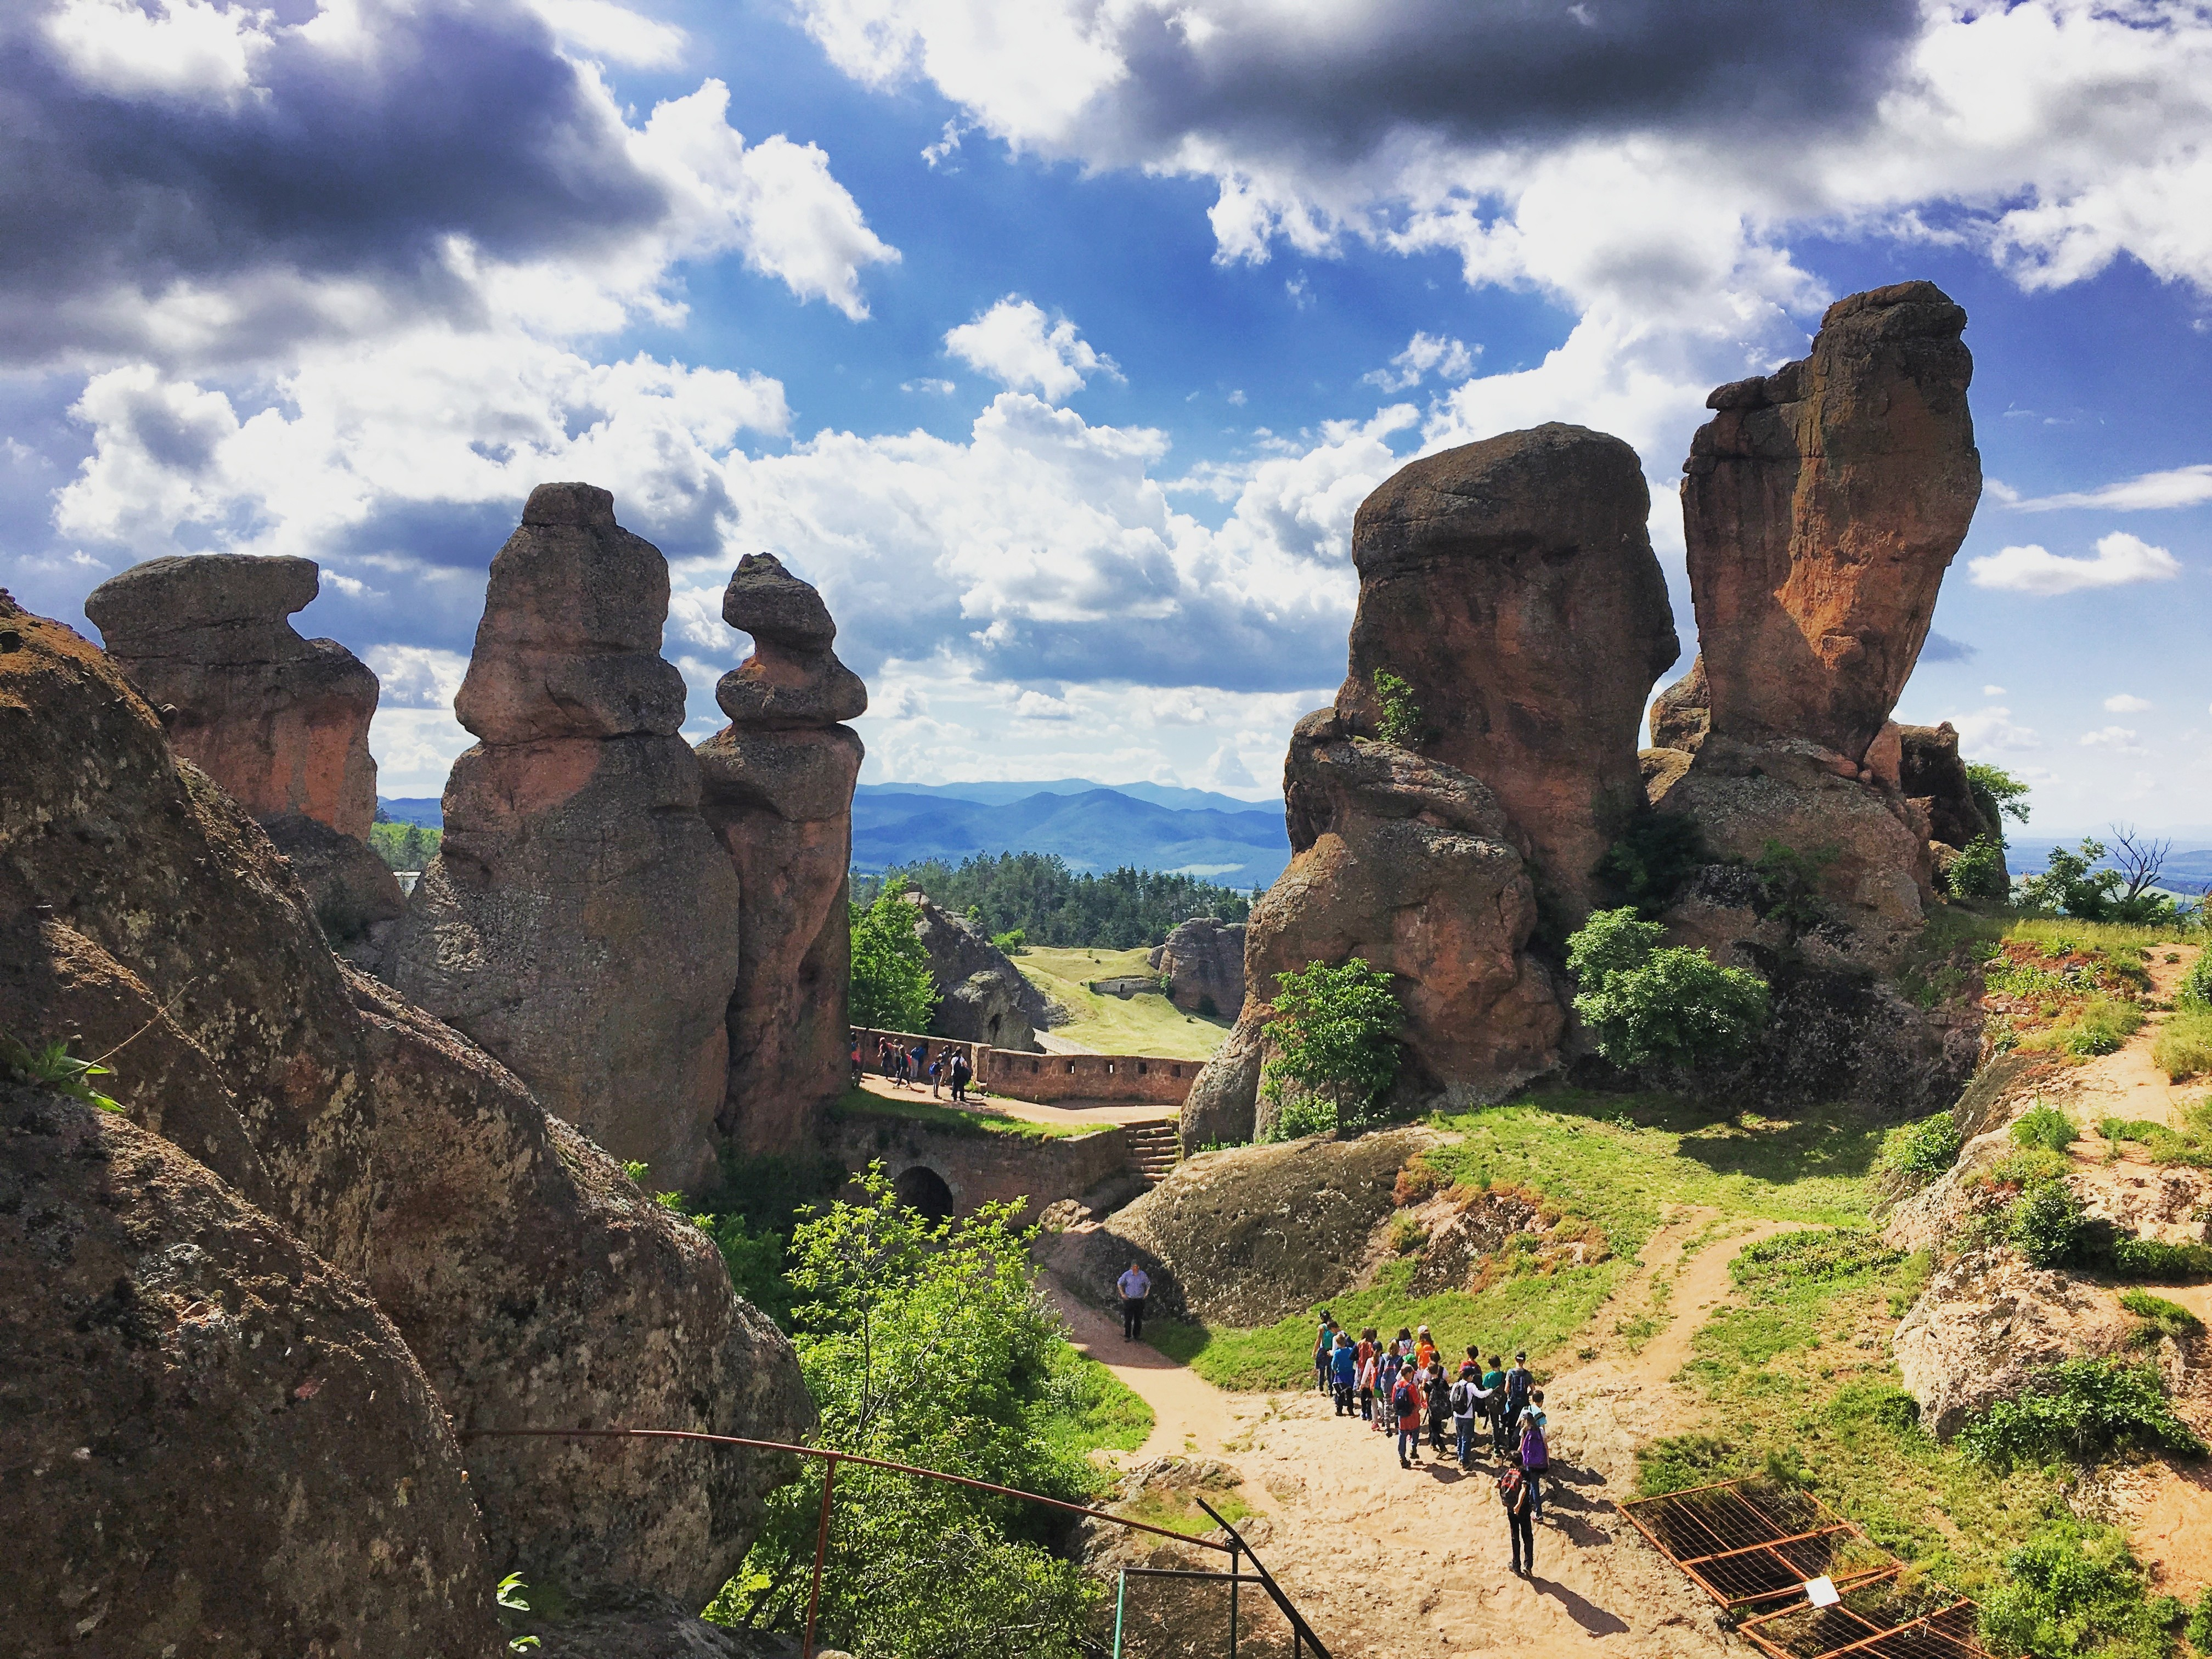 The Rocks of Belogradchik and the Magurata Cave